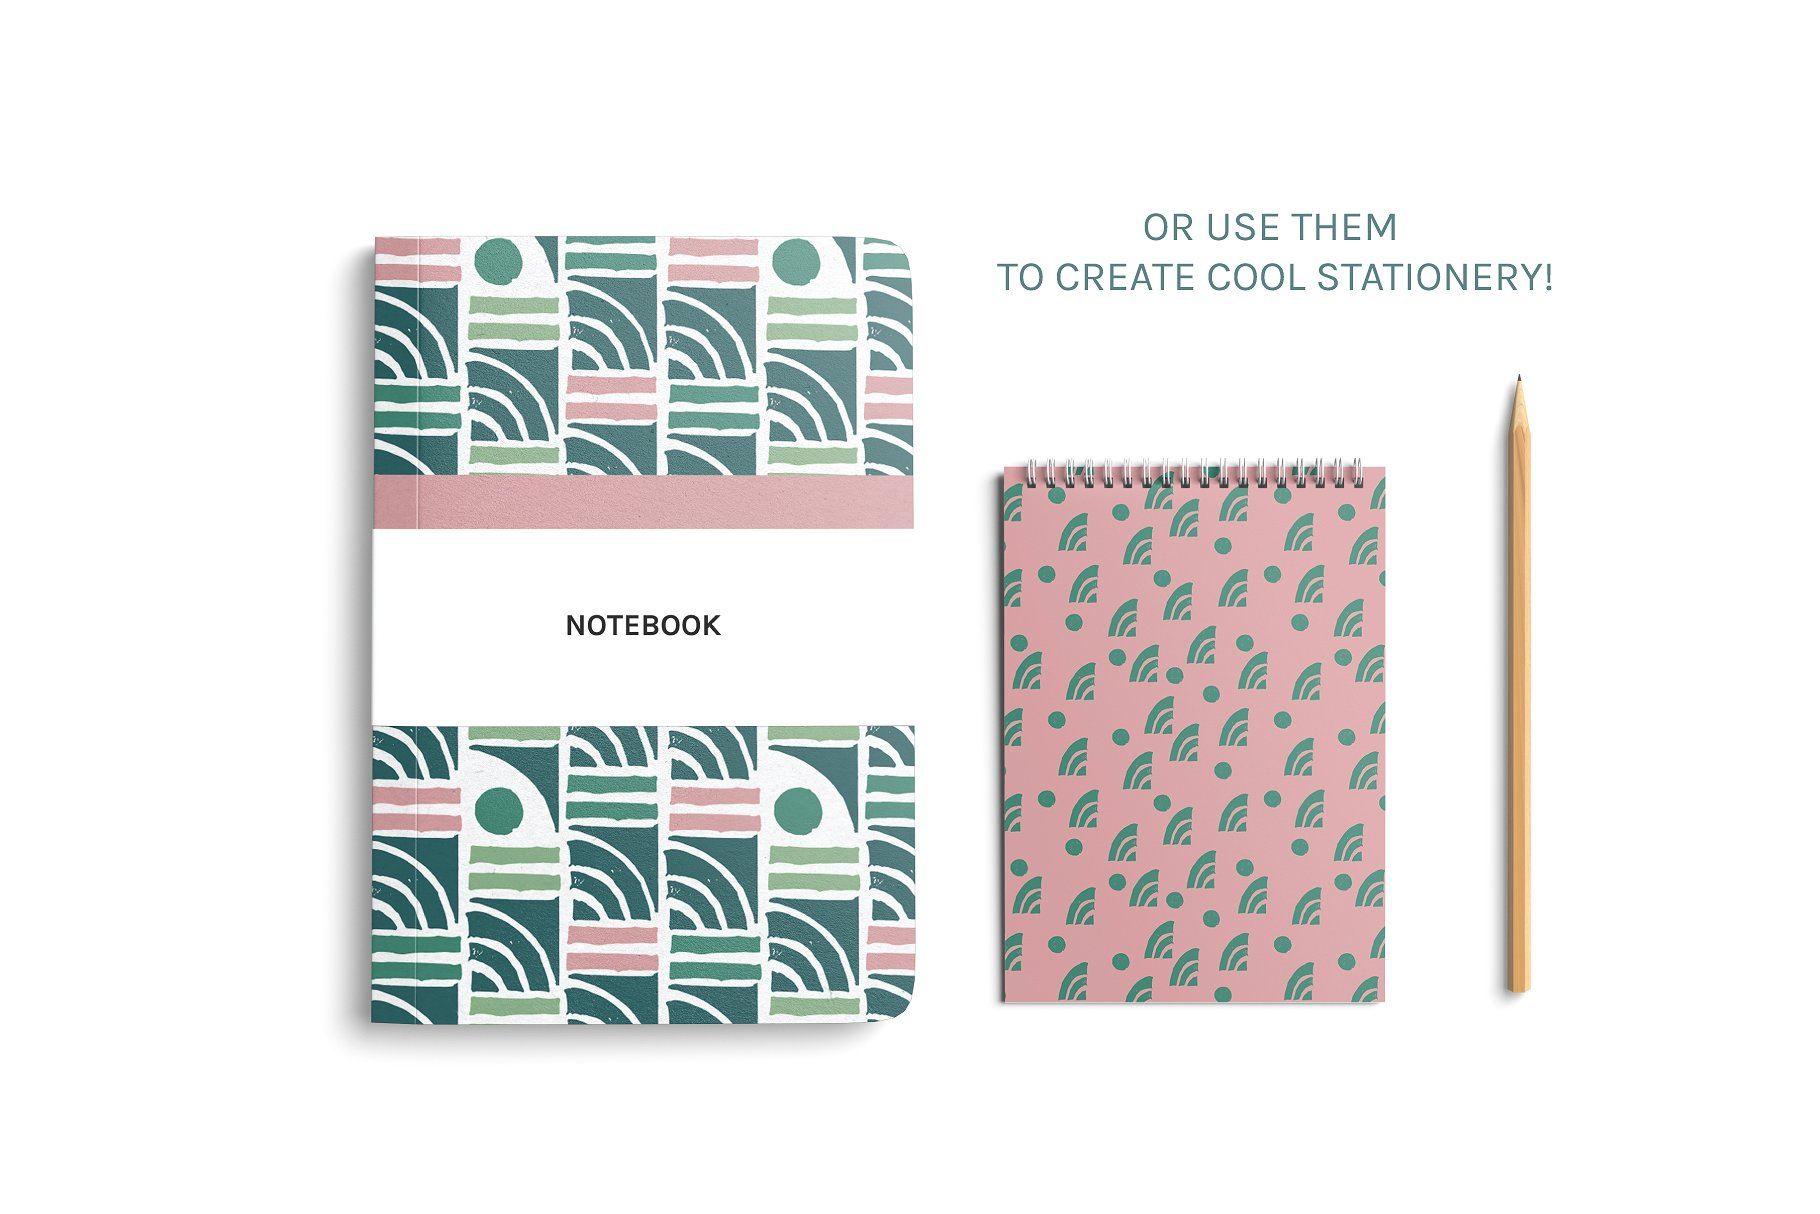 minted-modern_product-images-10-.jpg